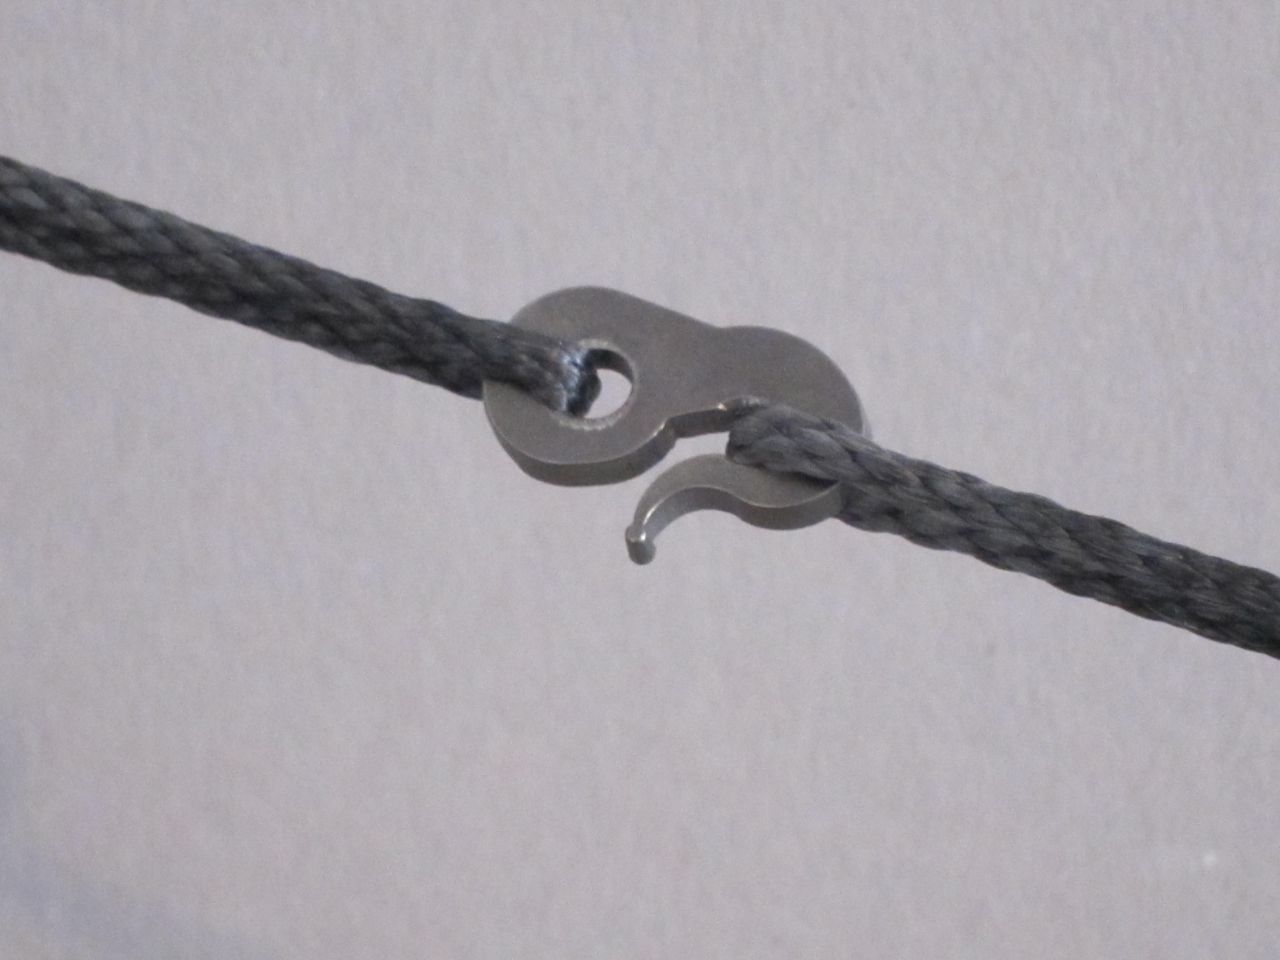 Dutch Hook Attached To Whoopie Sling And Continuous Loop